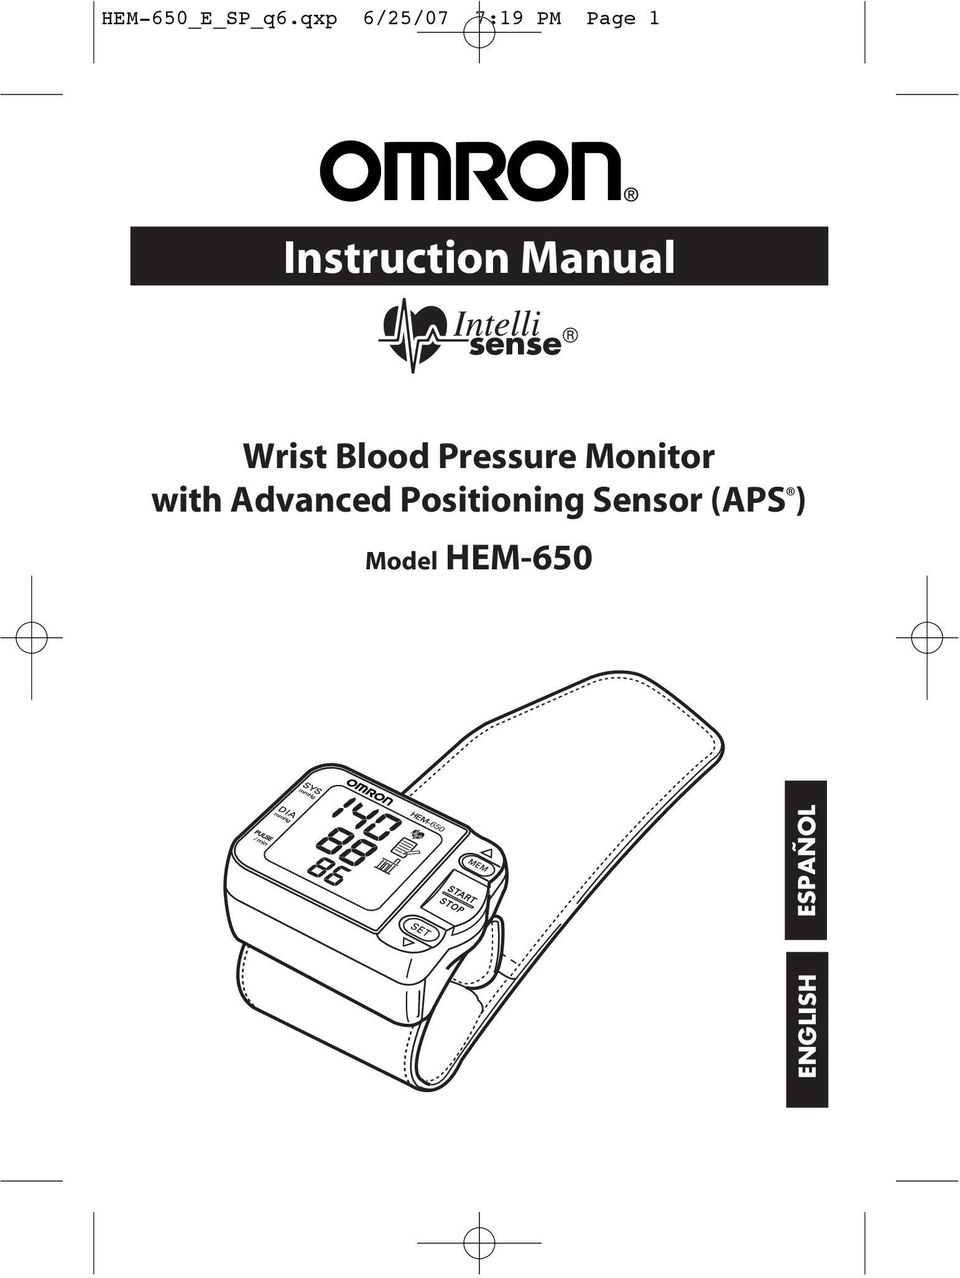 Manual Wrist Blood Pressure Monitor with